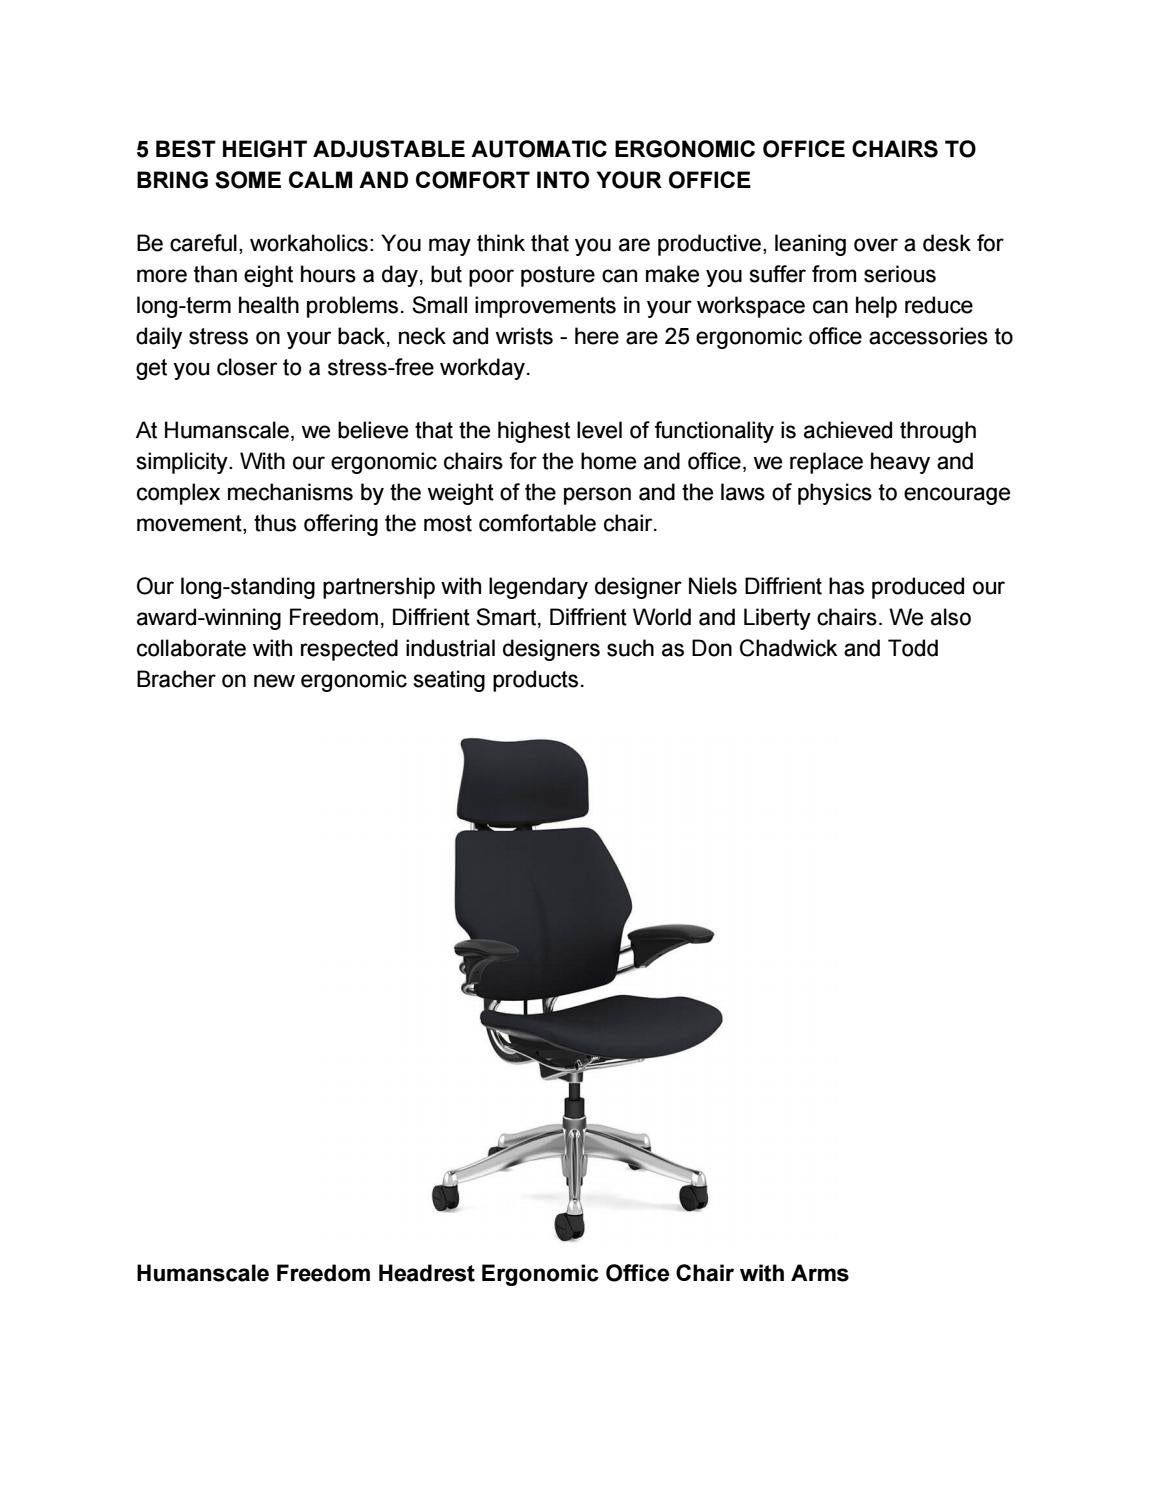 Surprising 5 Best Height Adjustable Automatic Ergonomic Office Chair To Caraccident5 Cool Chair Designs And Ideas Caraccident5Info